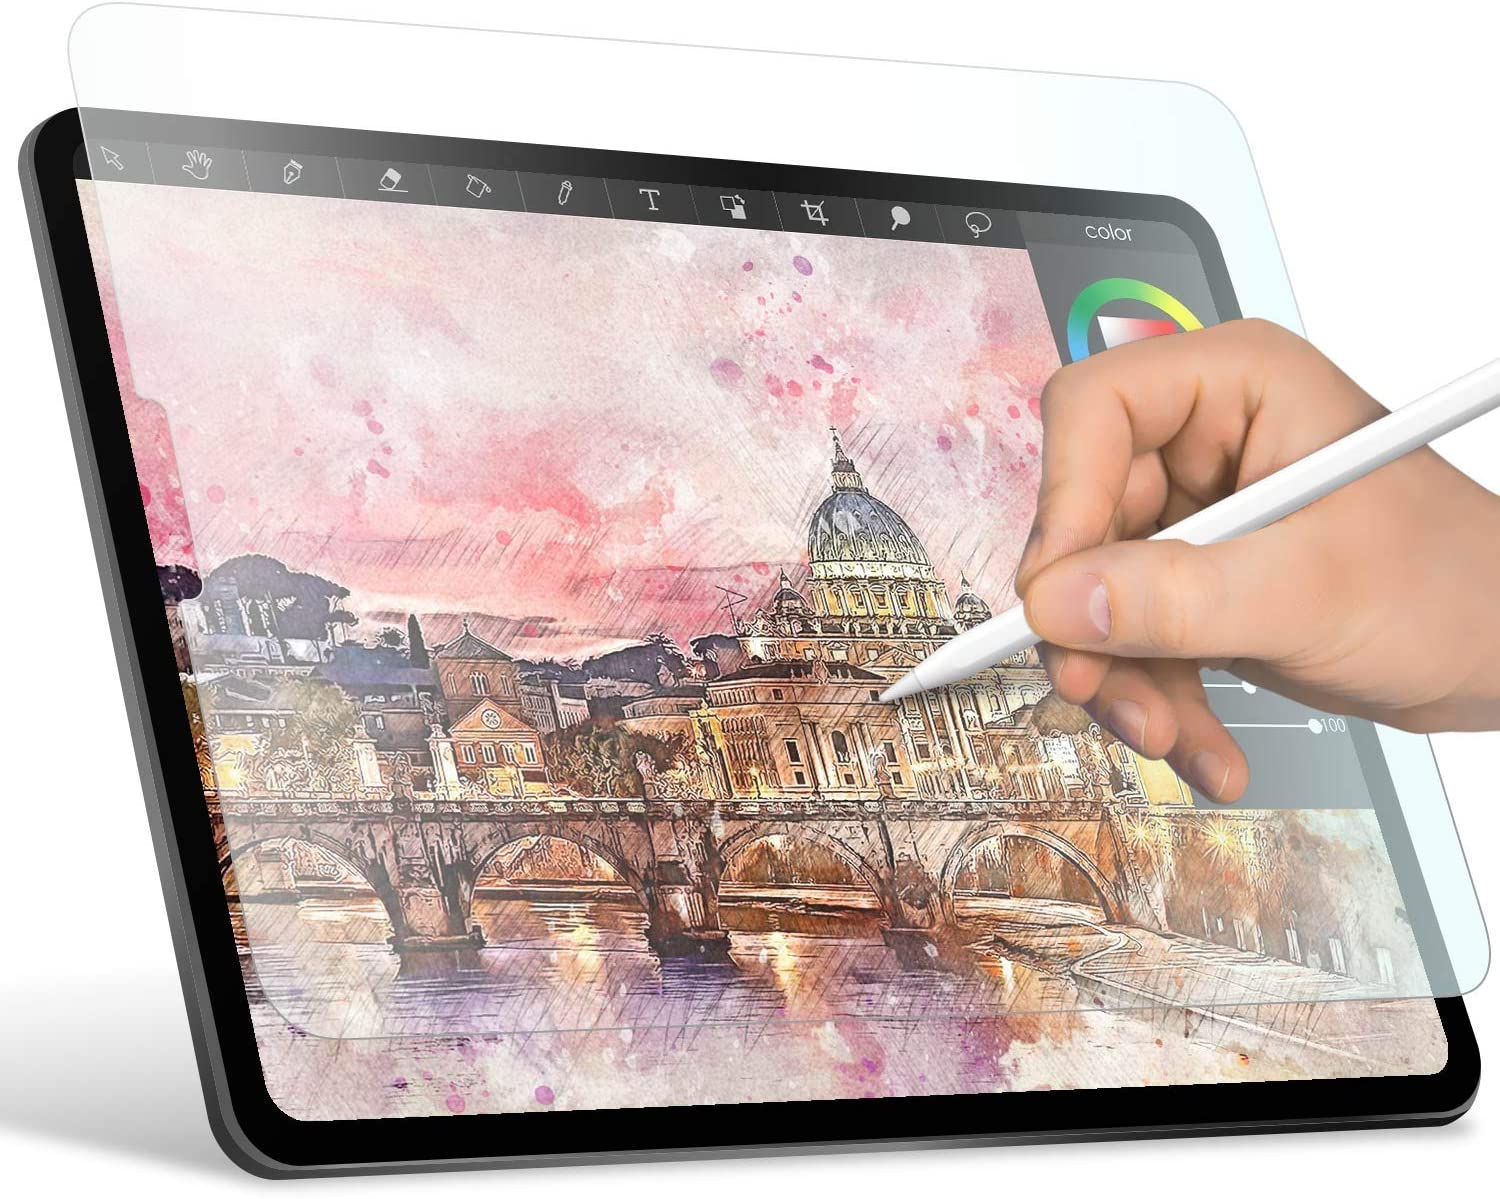 """ELECOM Paper-Feel Screen Protector Designed for Drawing, Anti-Glare Scratch-Resistant Bubble-Free, Compatible with 12.9"""" iPad Pro 2018/2020 (TB-A18LFLAPL-W)"""